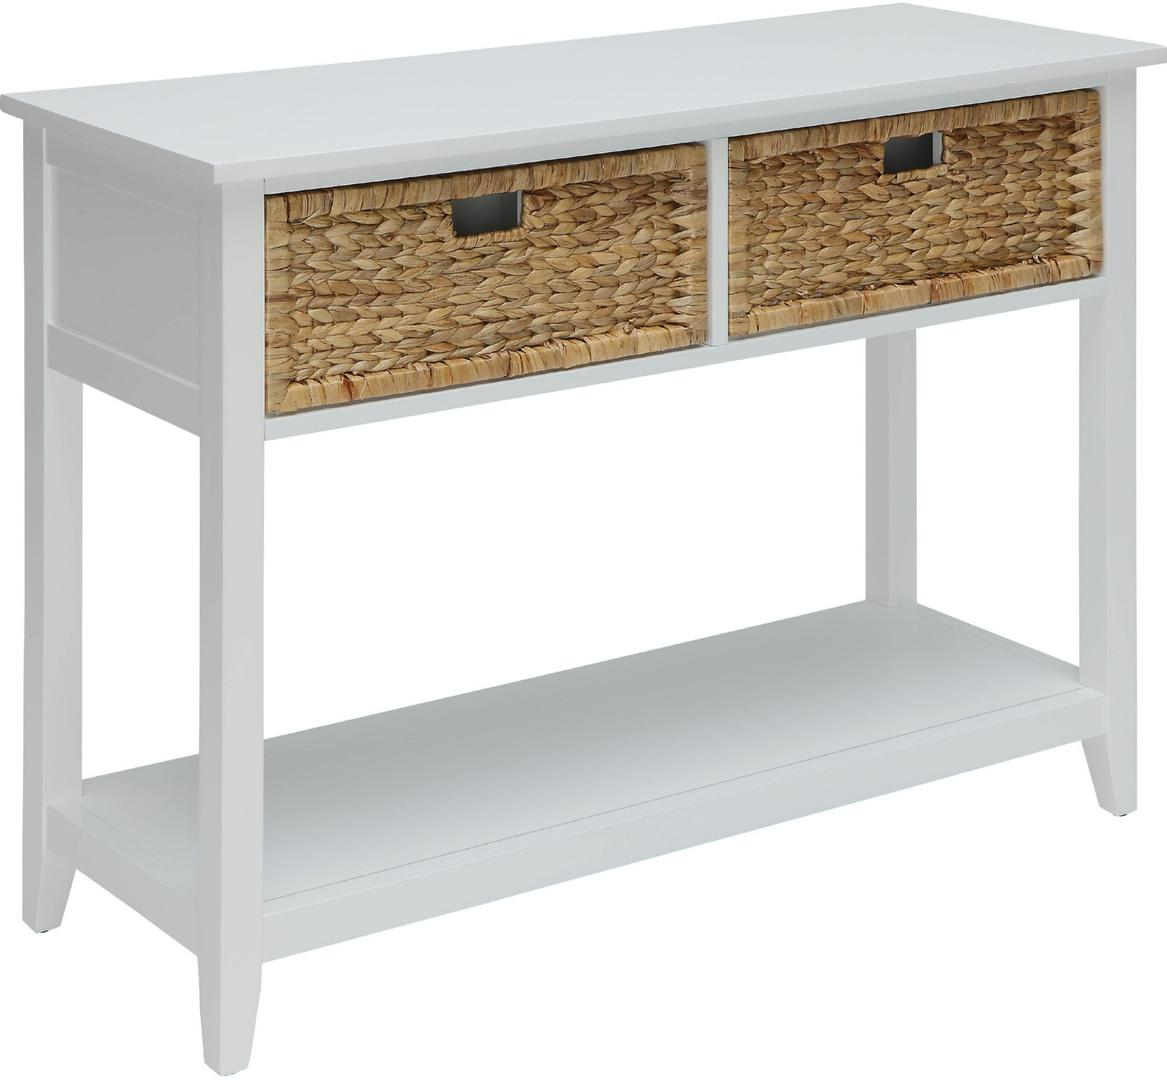 "44"" X 16"" X 28"" White Solid Wood Leg Console Table"